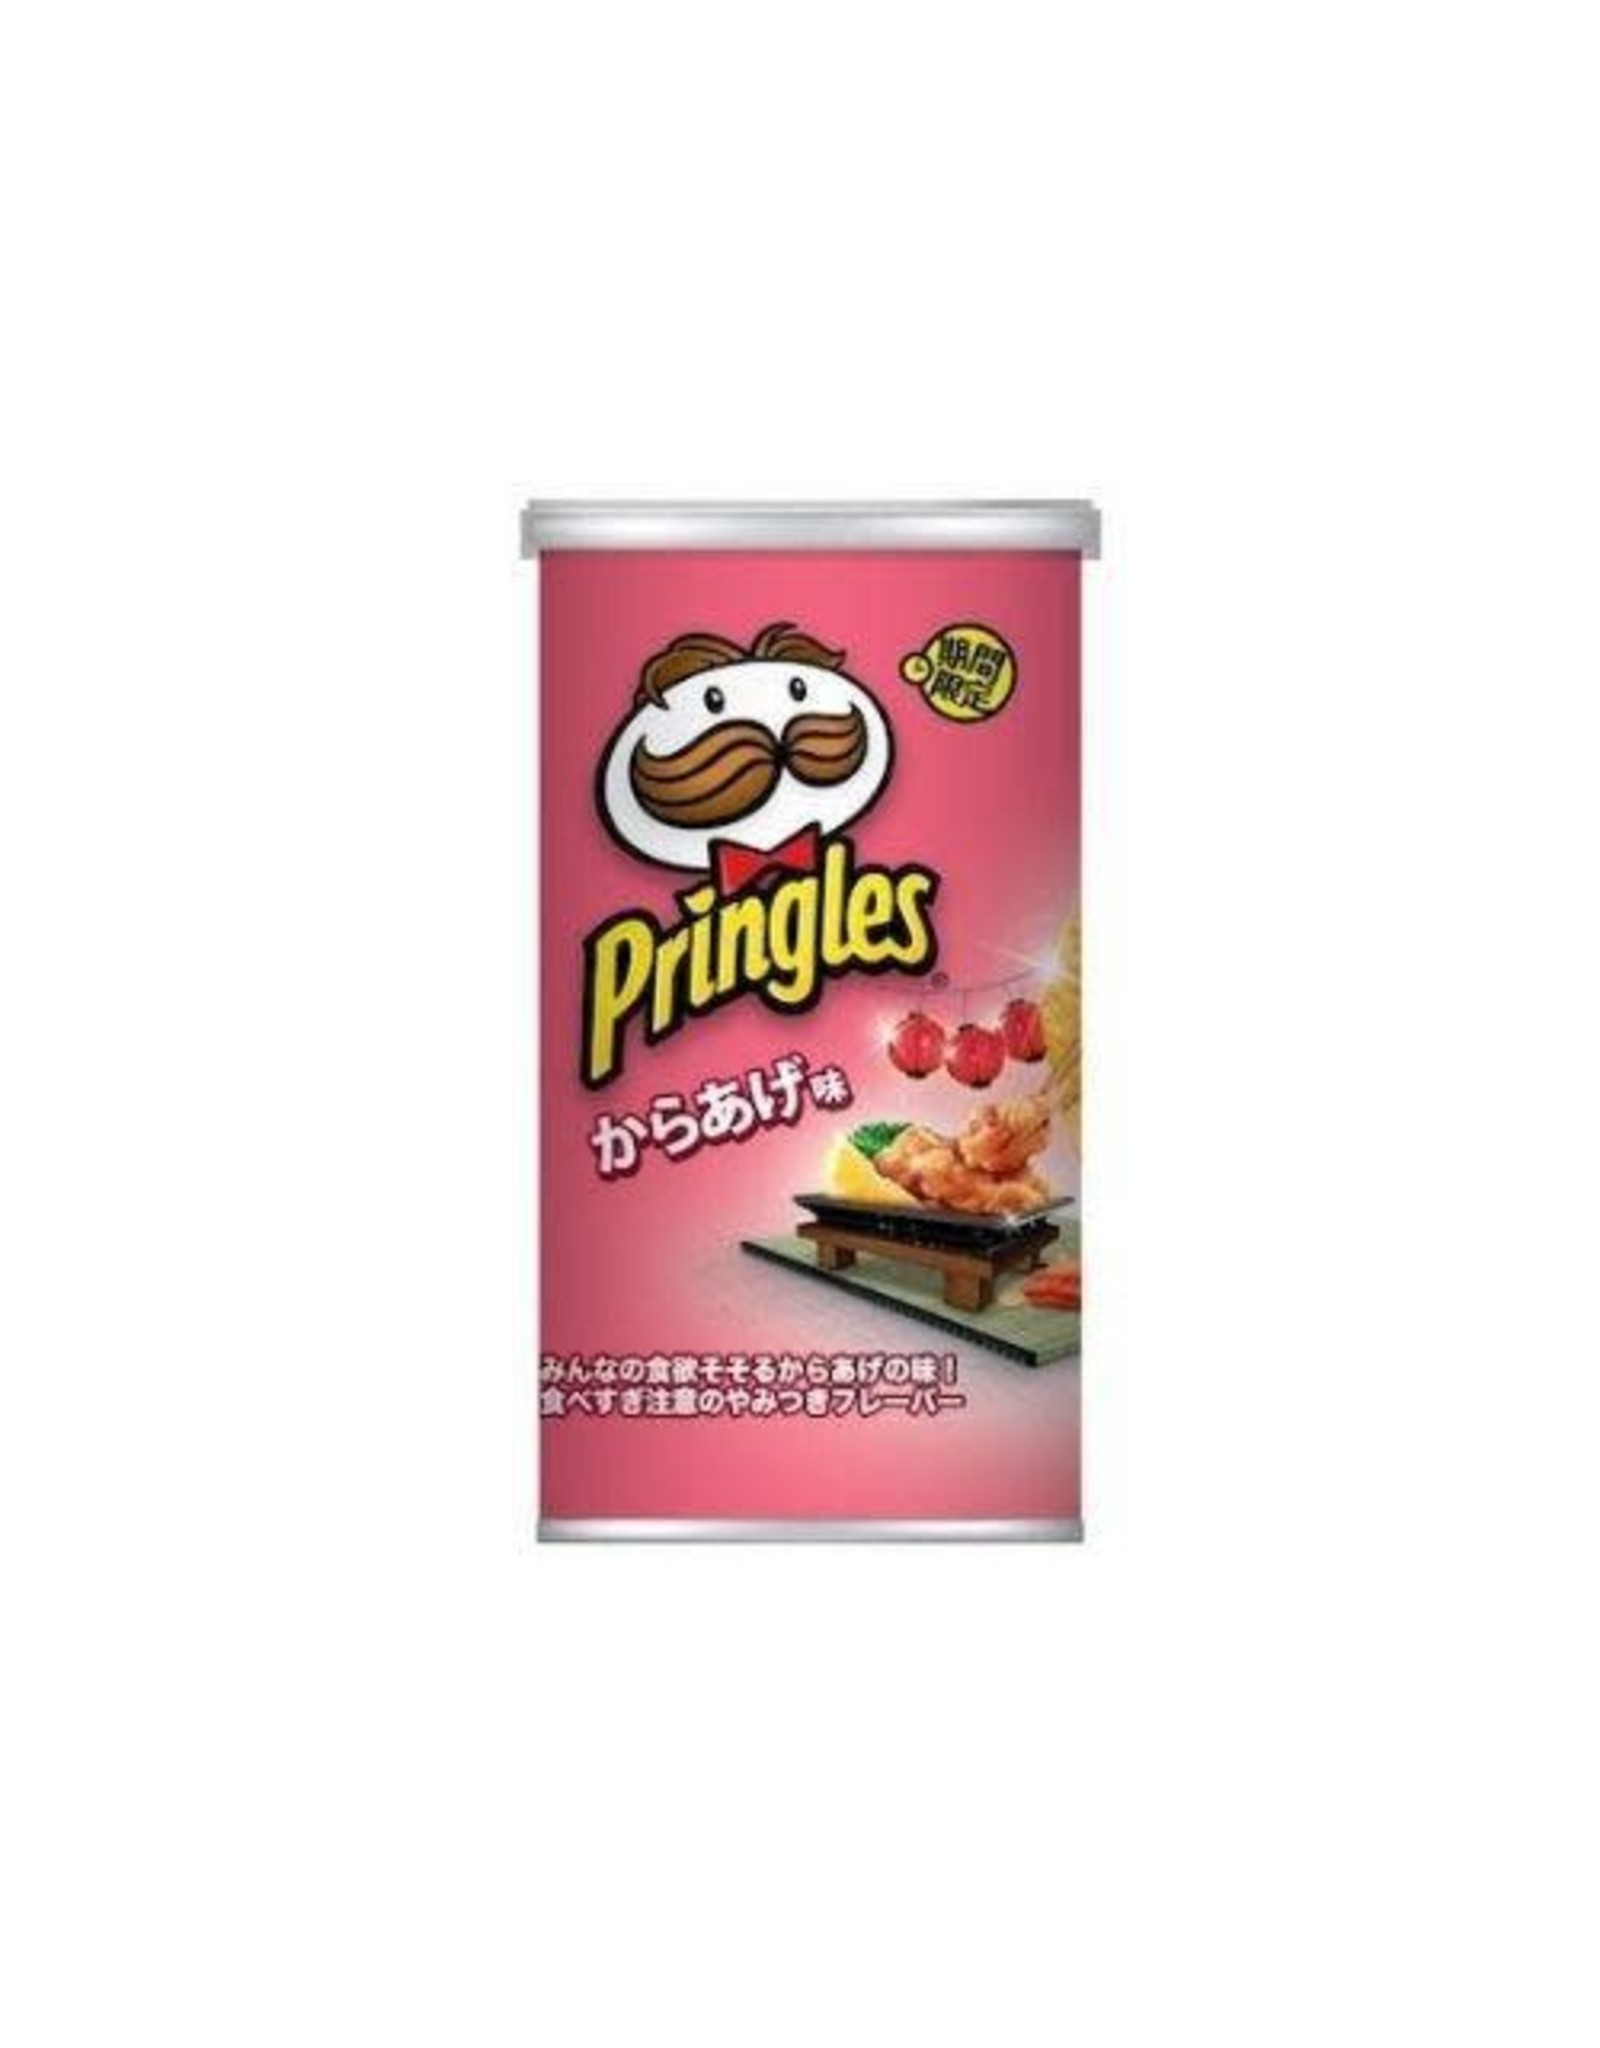 Pringles Fried Chicken (Japan Exclusive) - 53g